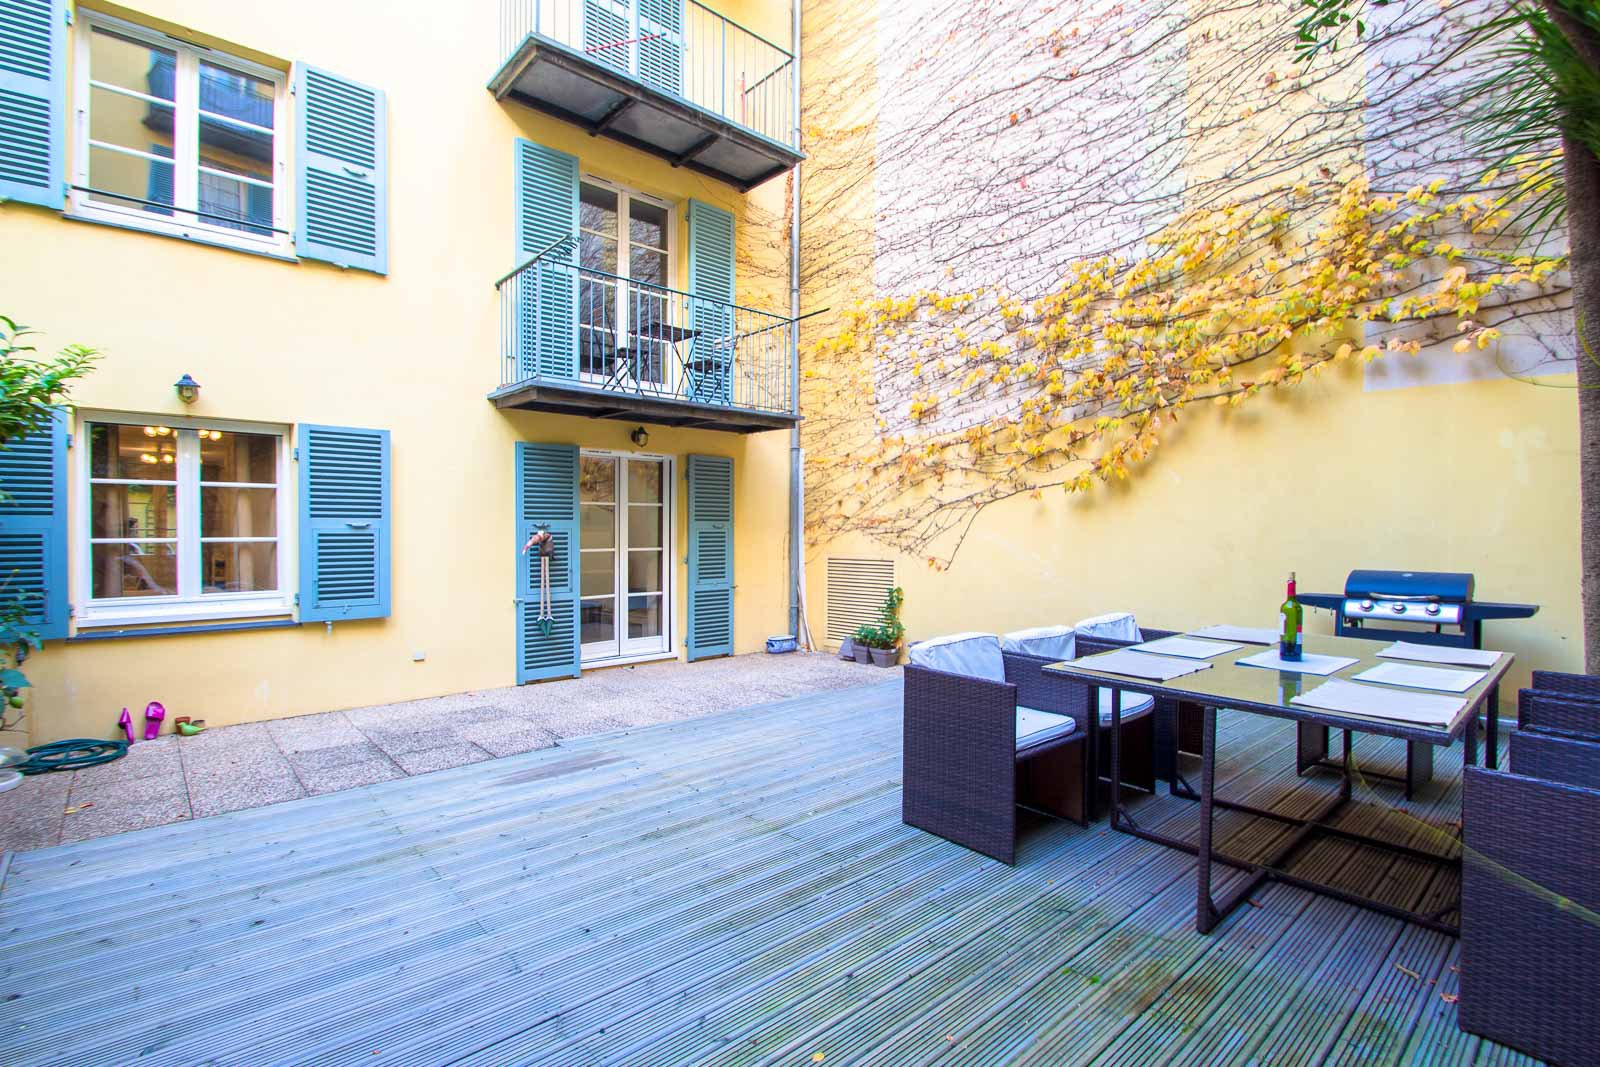 2 BEDROOMS APARTMENT: OLD CITY AND GARIBALDI